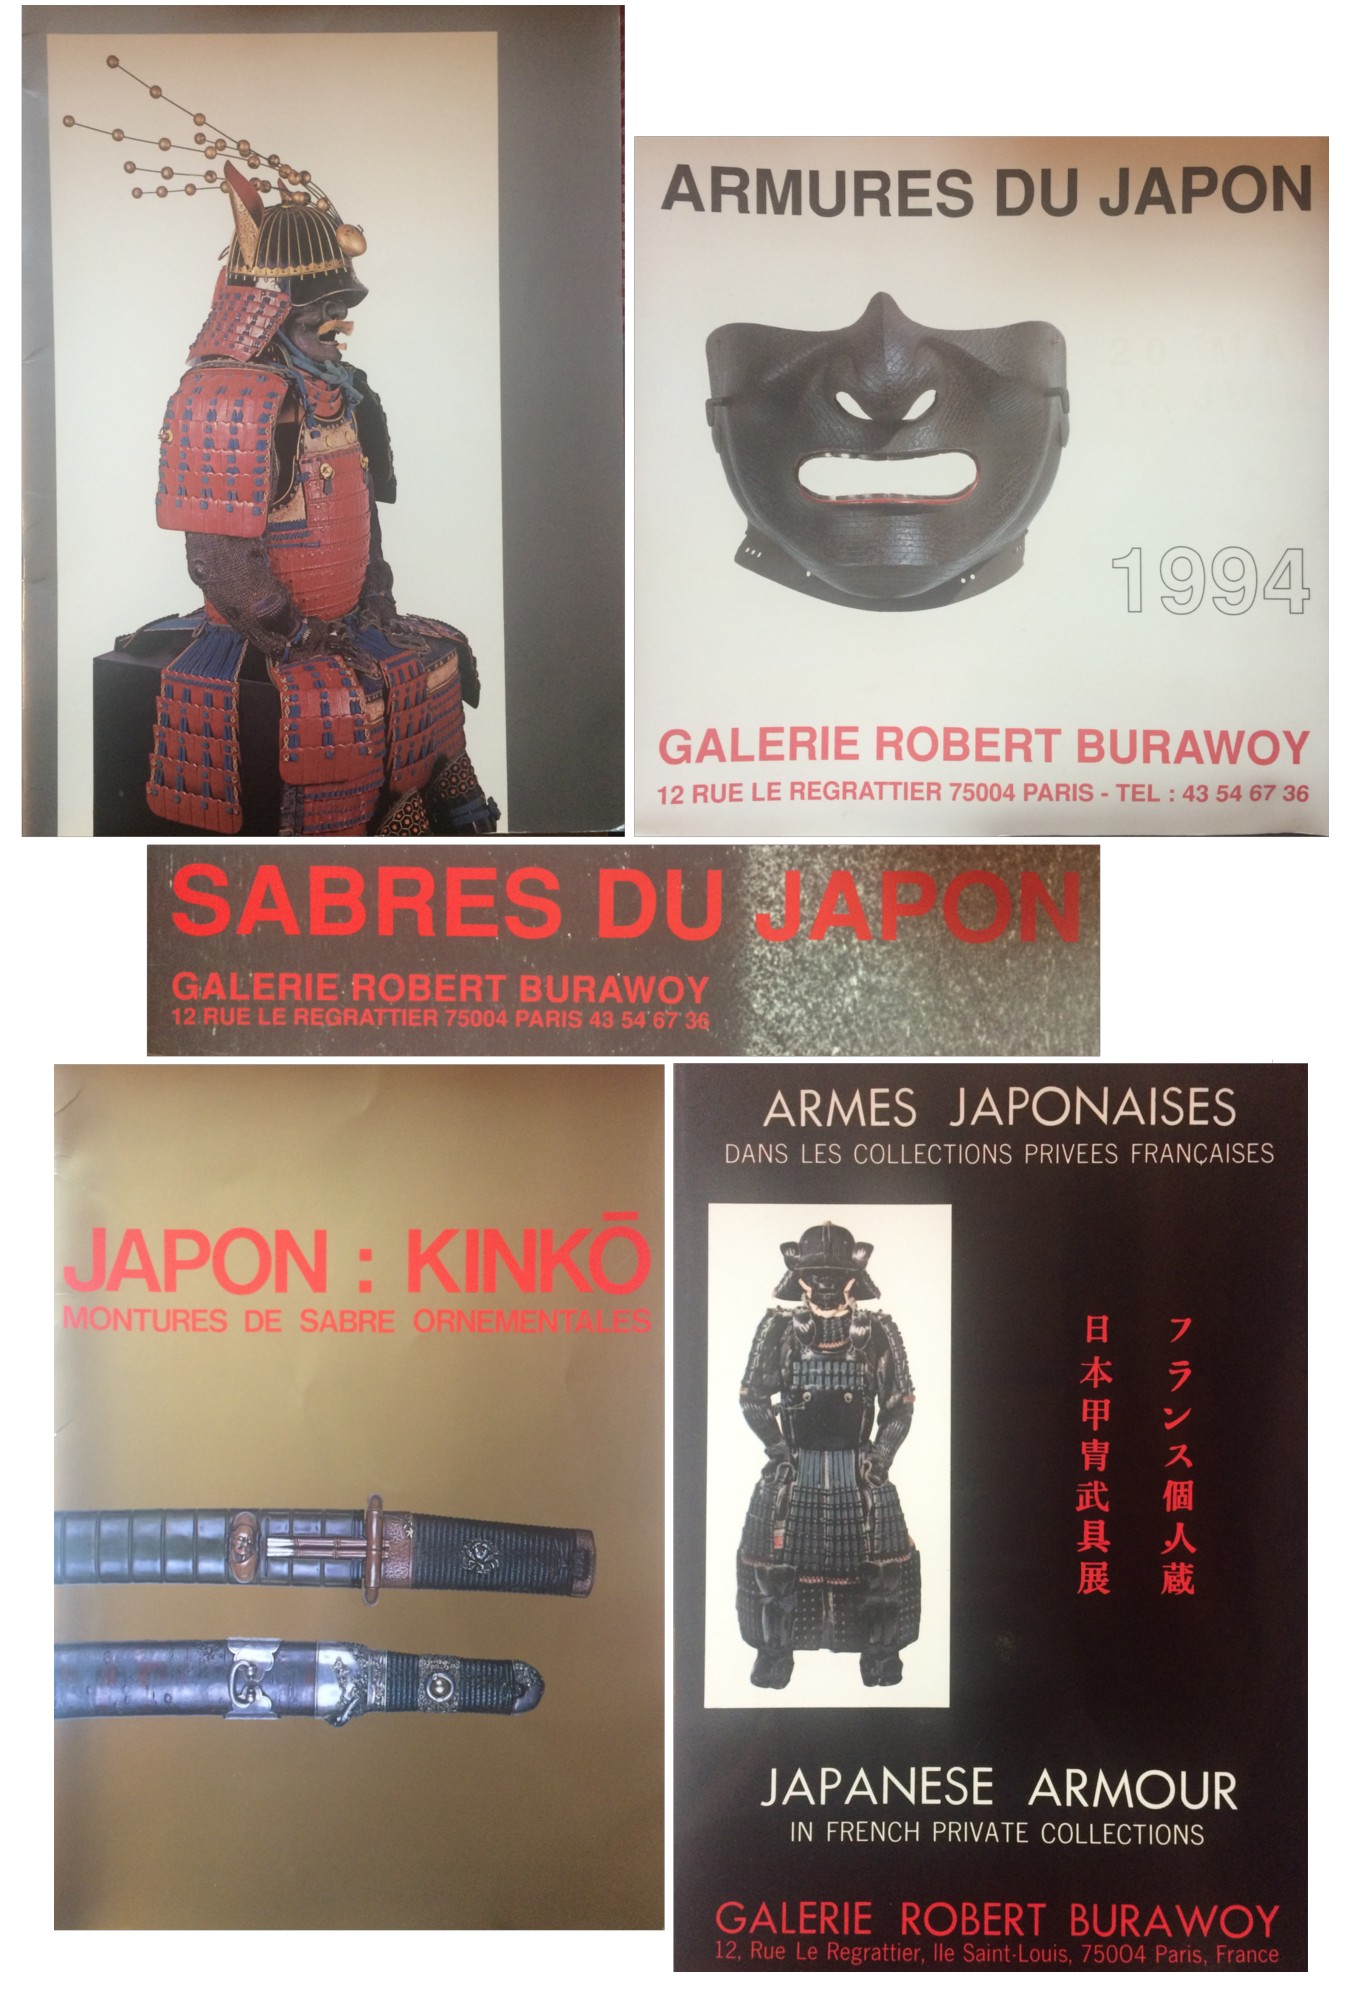 BURAWOY, ROBERT - A GROUP OF FIVE CATALOGUES OF JAPANESE ARMS, ARMOR, AND SWORDS (INCLUDING ARMES JAPONAISES DANS LES COLLECTIONS PRIVEES FRANCAISES / JAPANESE ARMOUR IN FRENCH PRIVATE COLLECTIONS) ISSUED BY GALERIE ROBERT BURAWOY